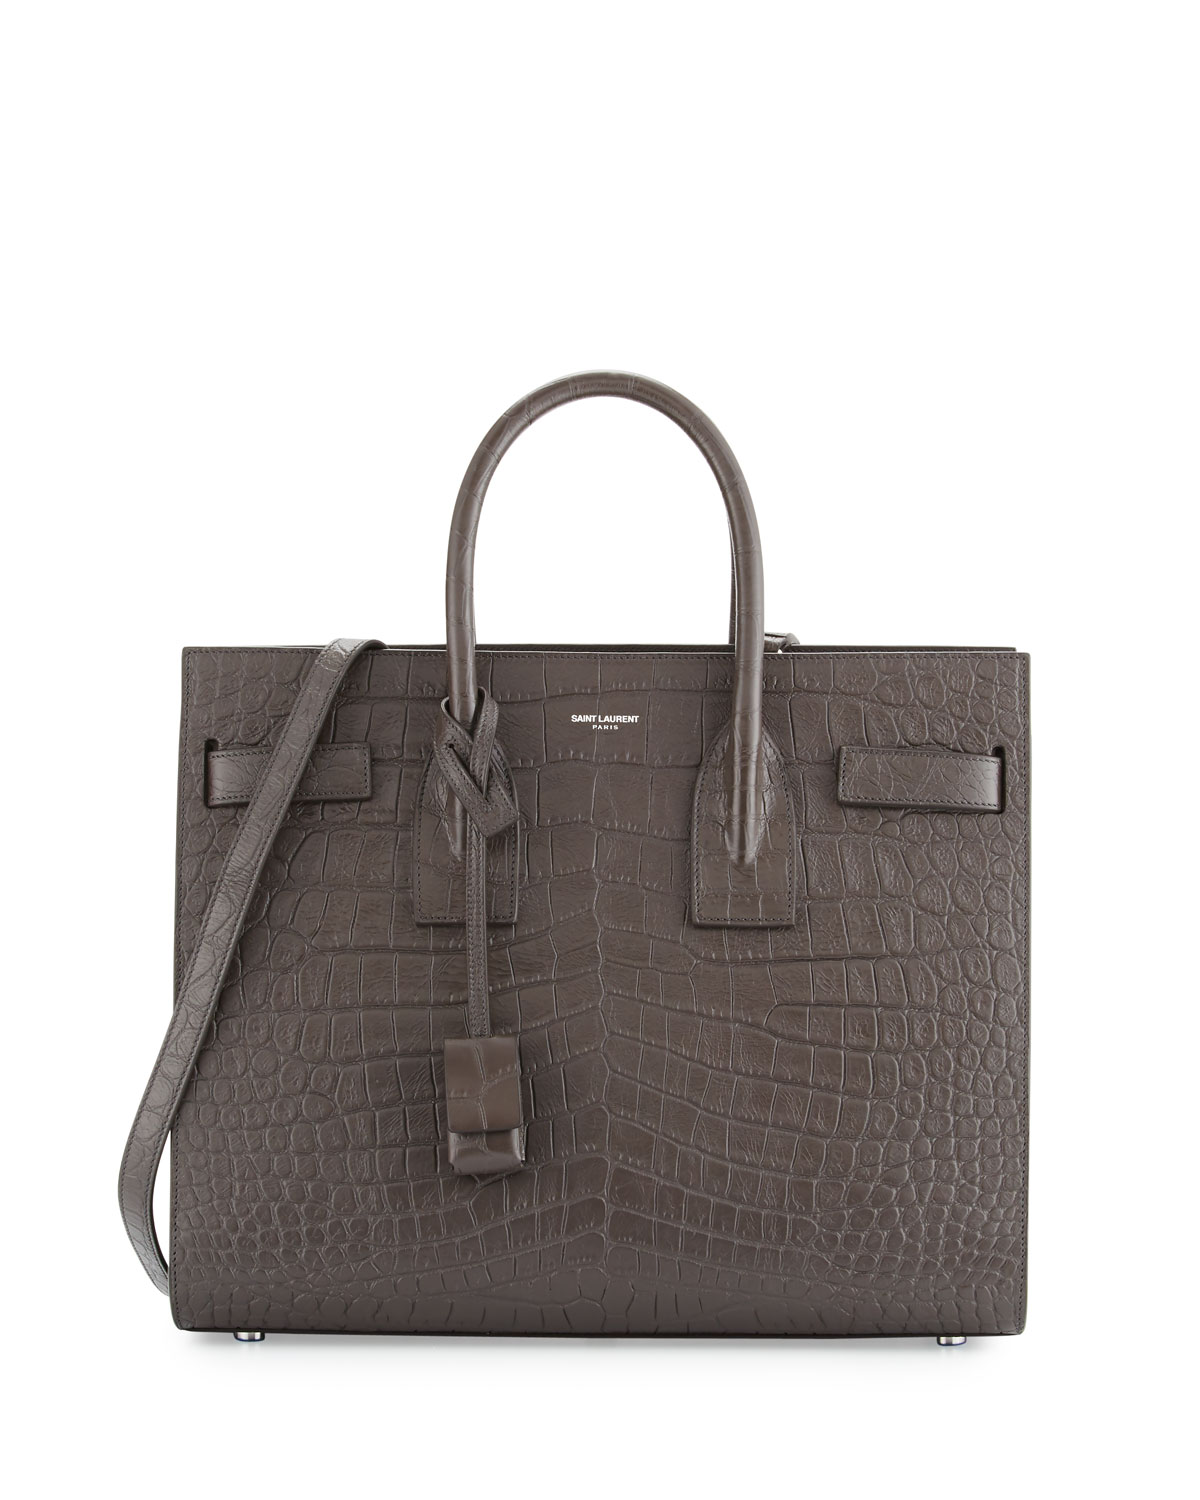 5a043479fe Saint Laurent Sac de Jour Small Crocodile-Embossed Satchel Bag